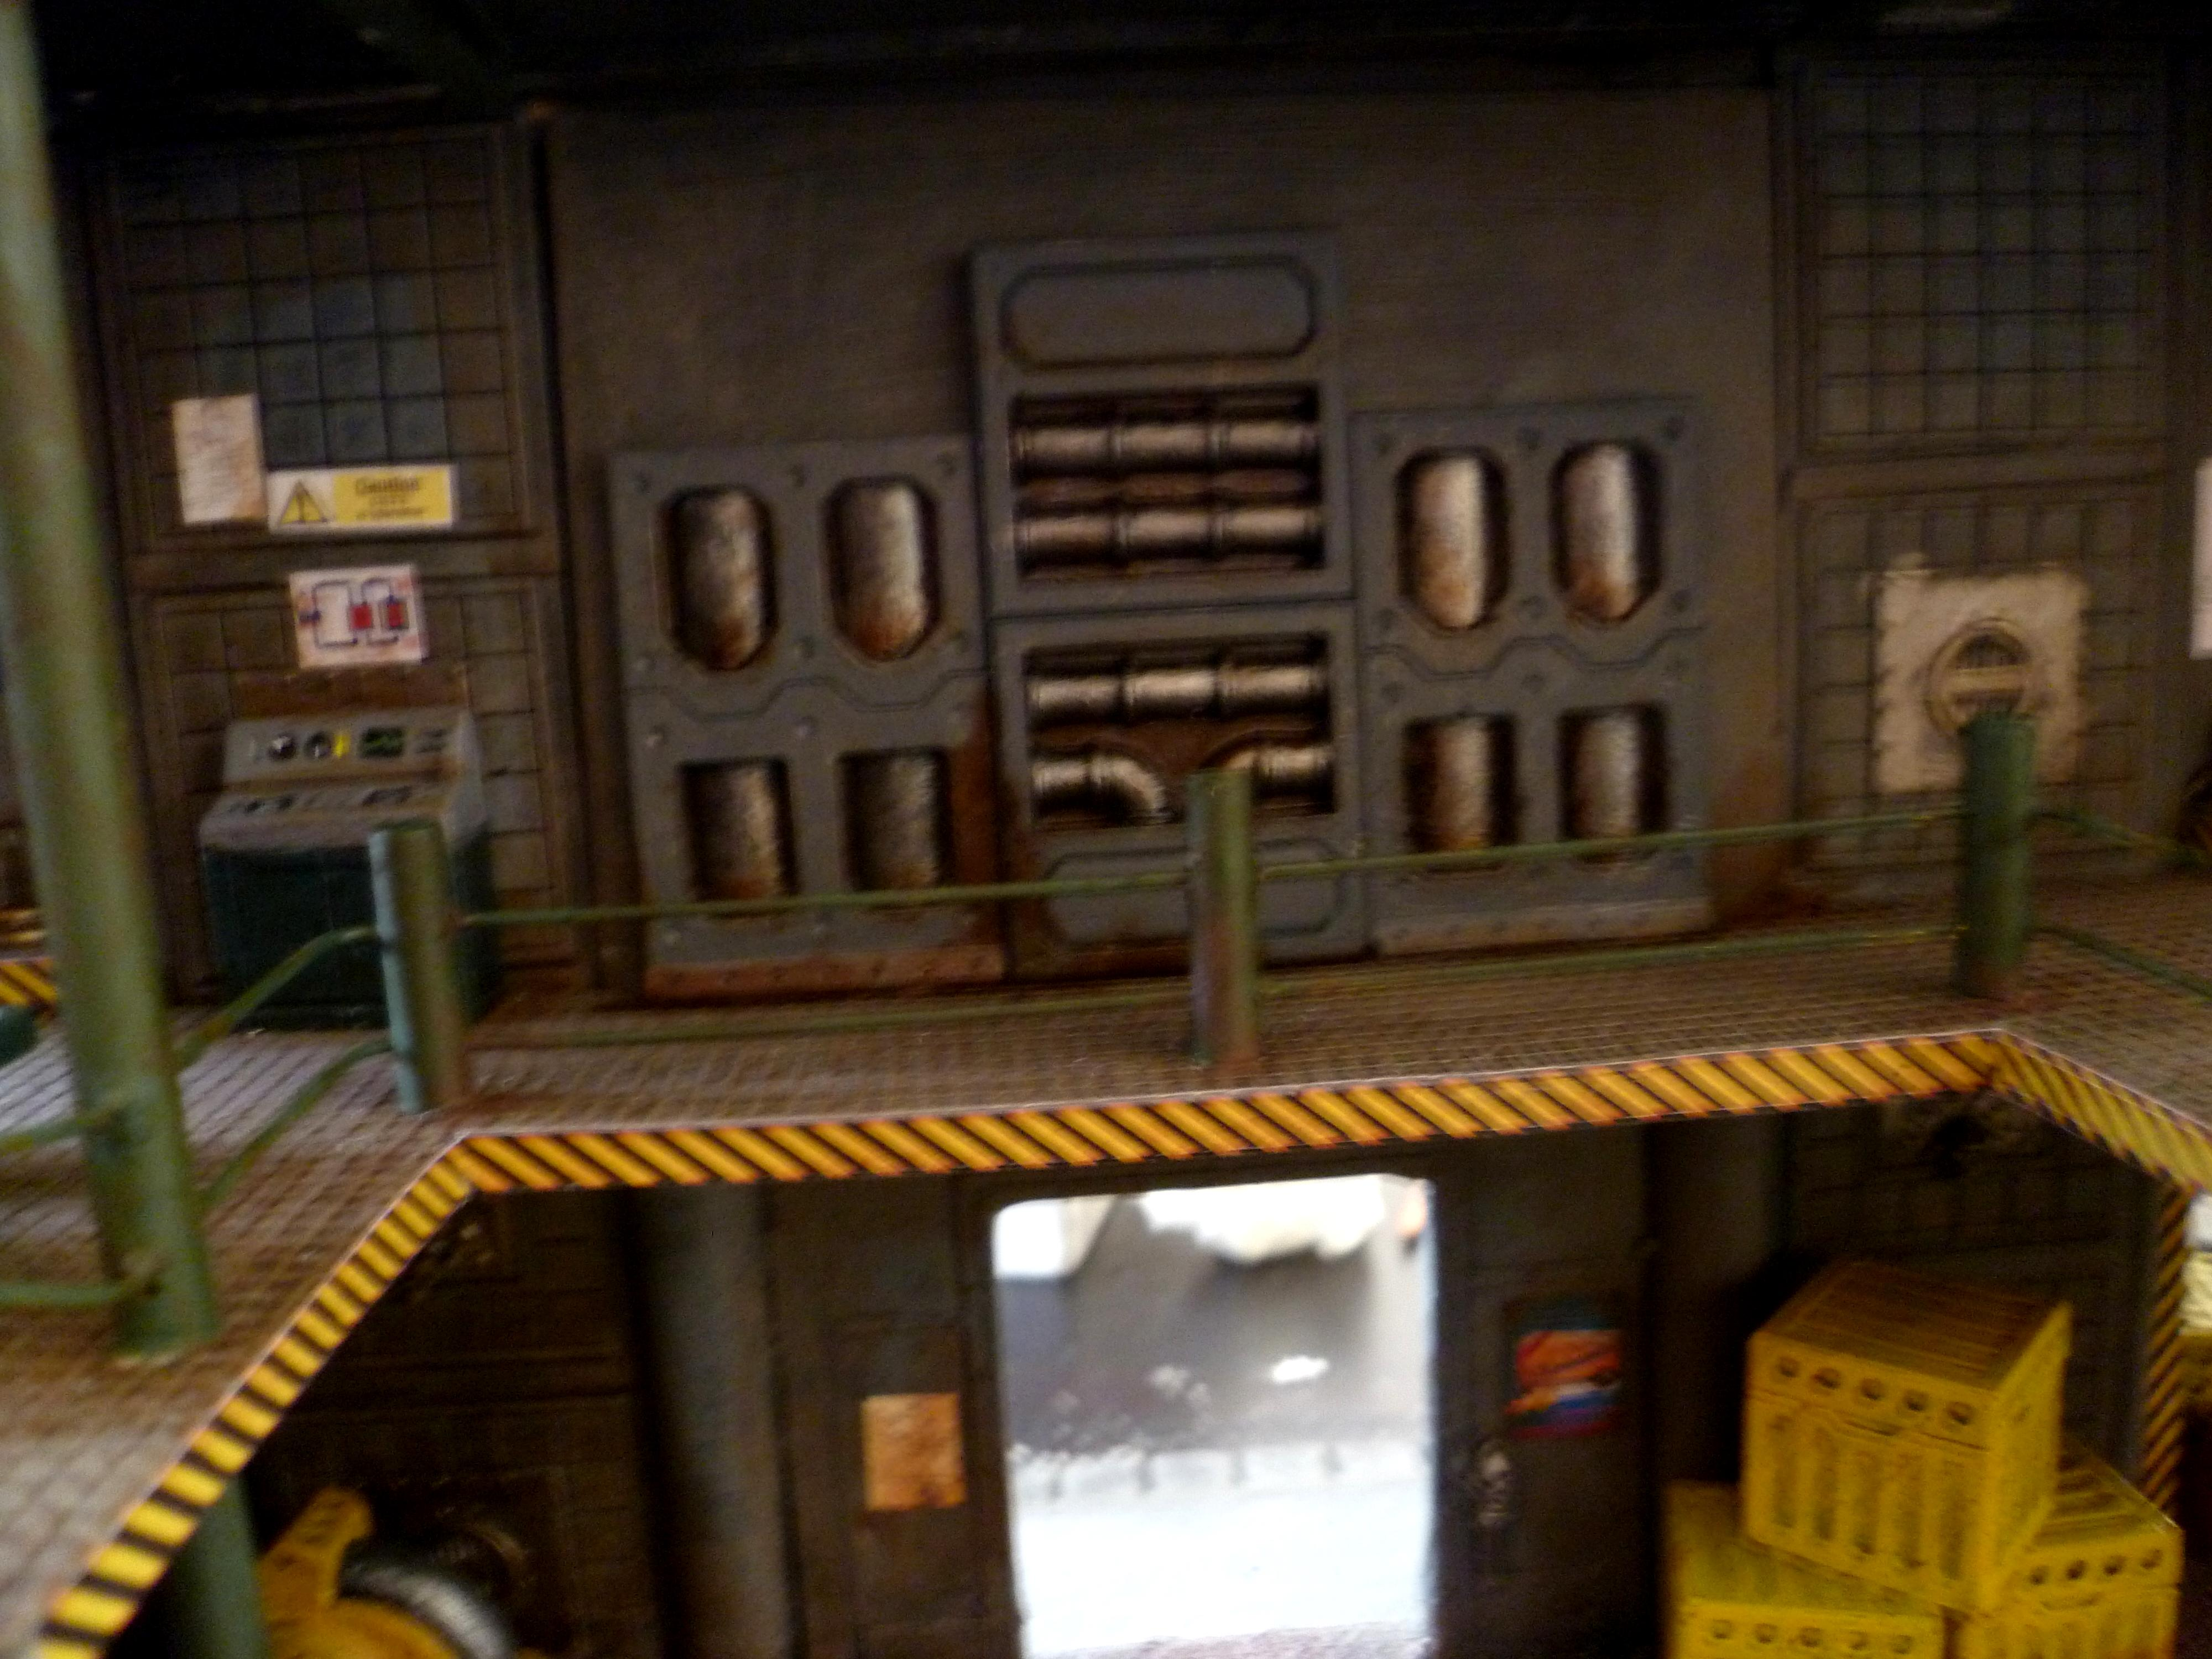 Boxes, Buildings, Cities Of Death, City, Crates, Finished, Floor, Flooring, Floors, Interior, Painted, Panels, Pipe, Pipes, Terrain, Wall, Walls